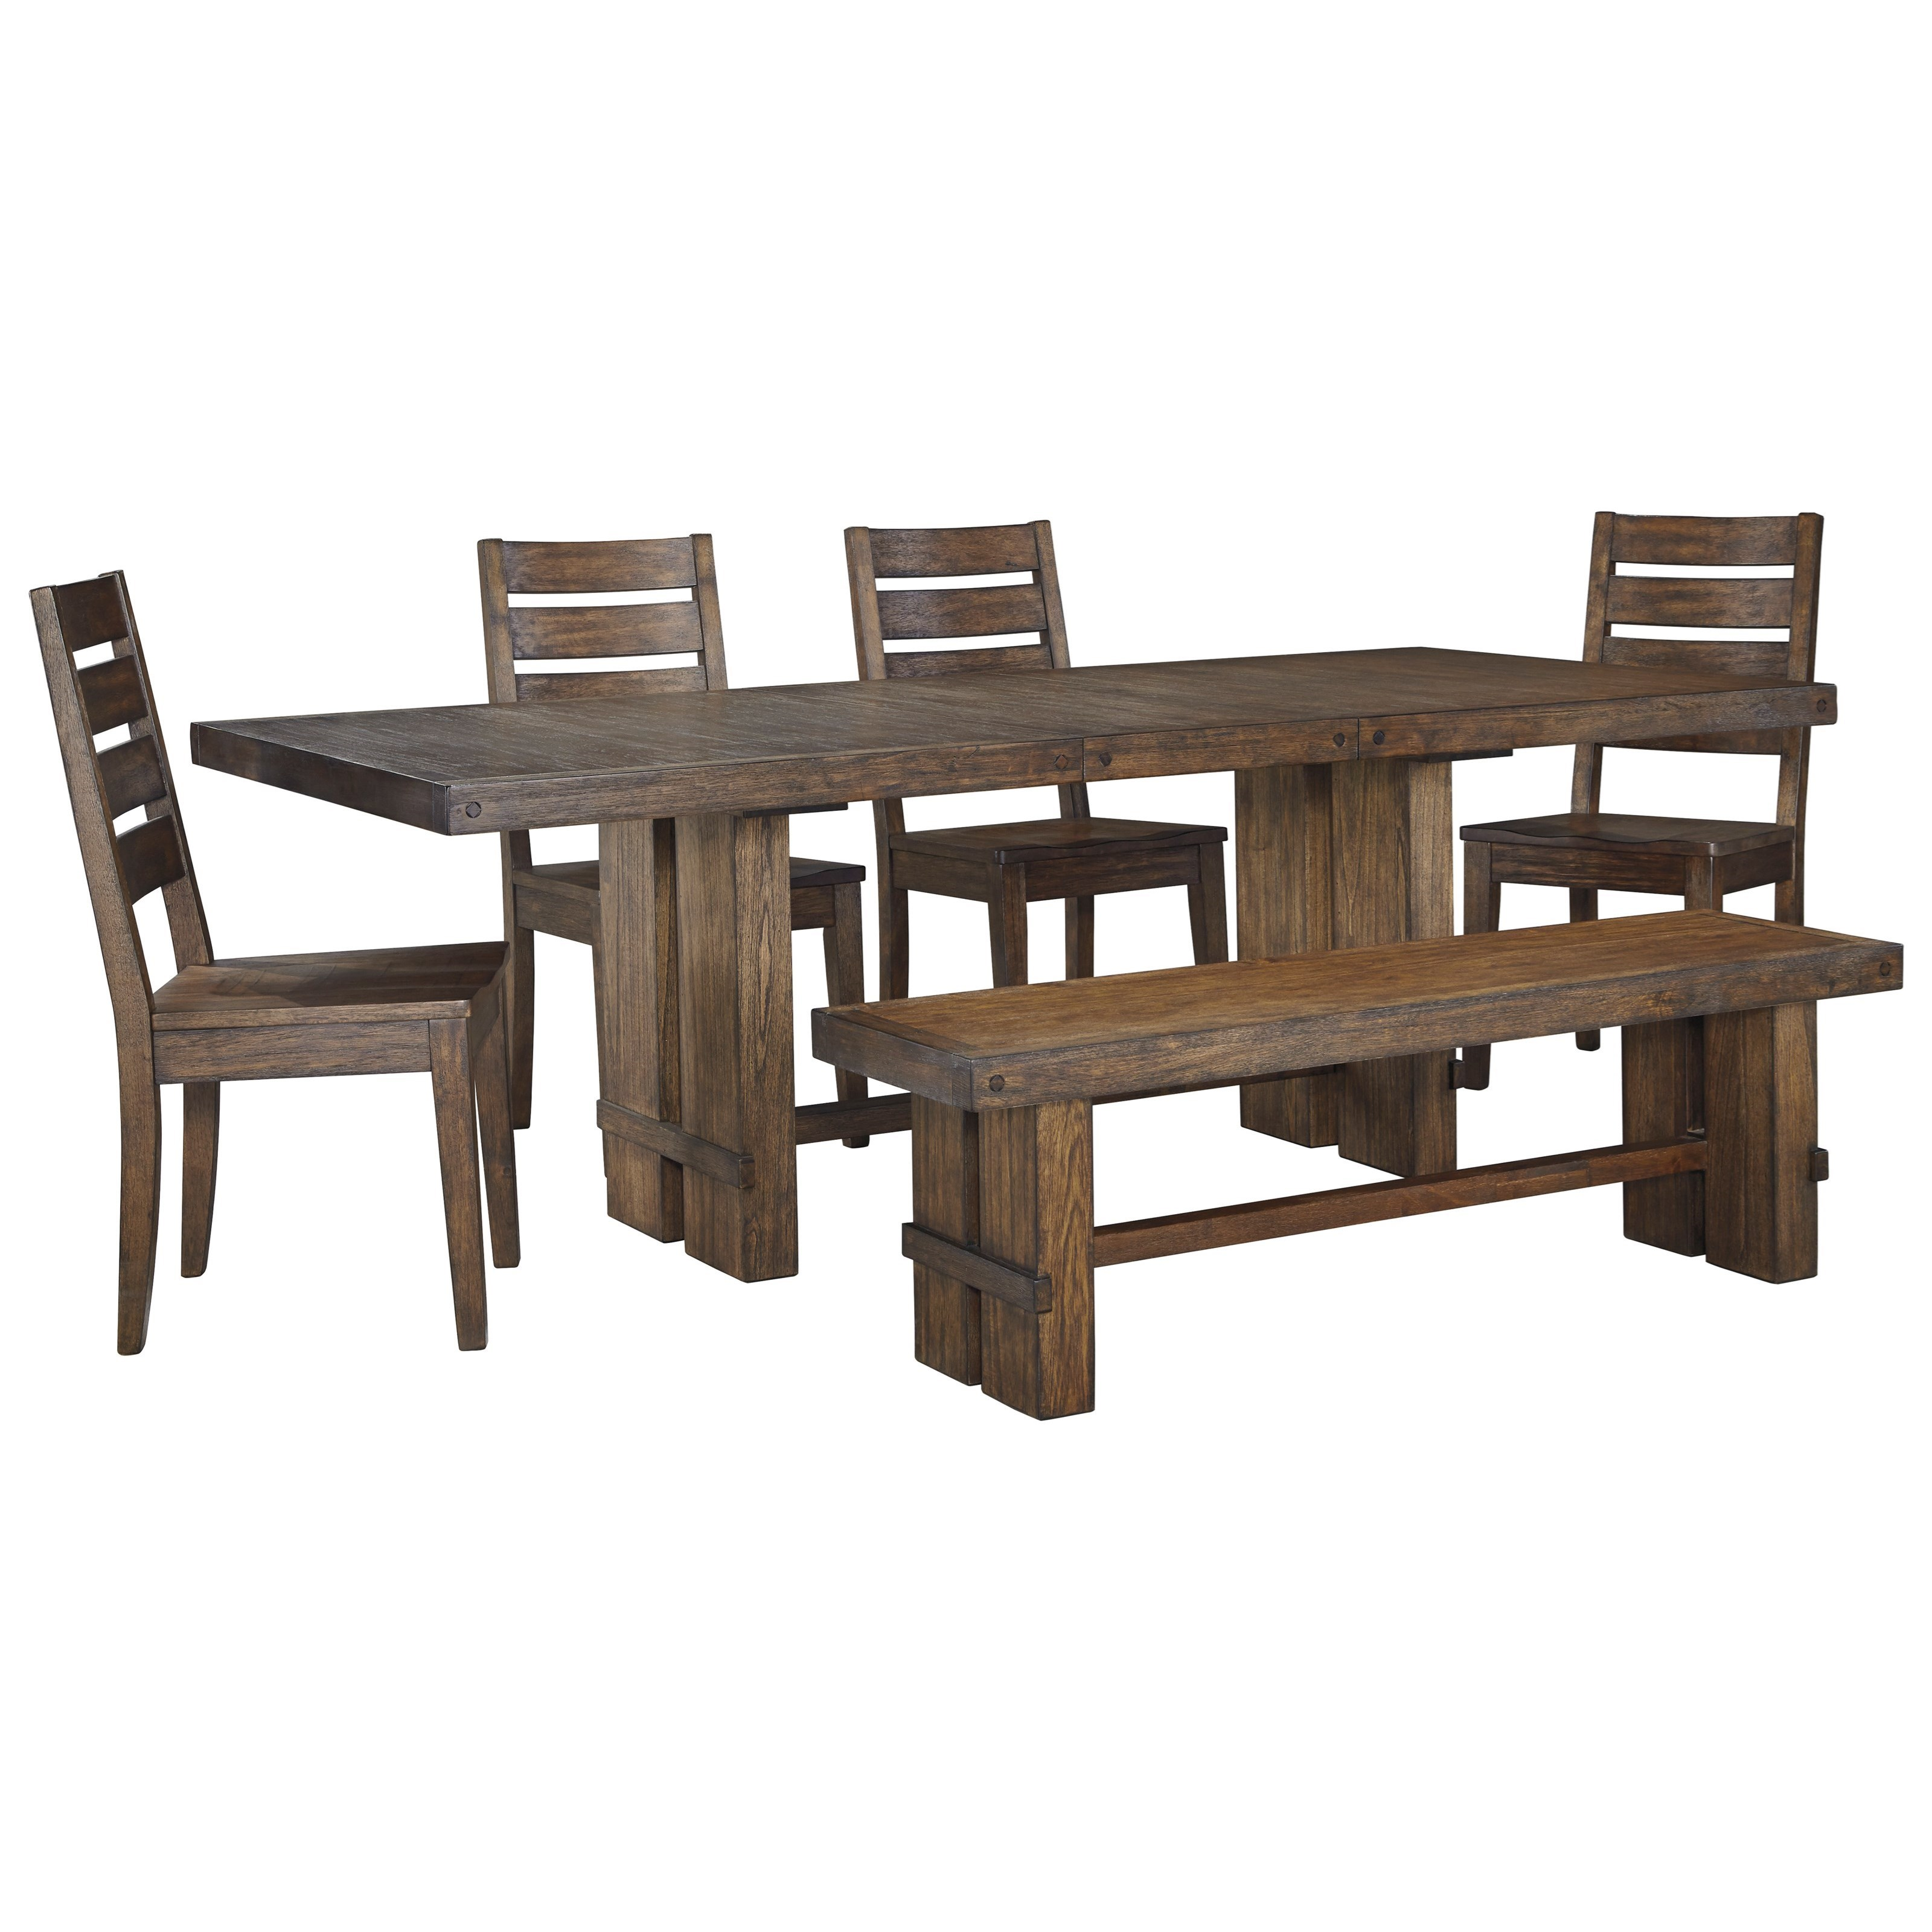 Signature Design by Ashley Leystone Rectangular Table and Chair Set with Bench - Item Number: D614-35+00+4x01